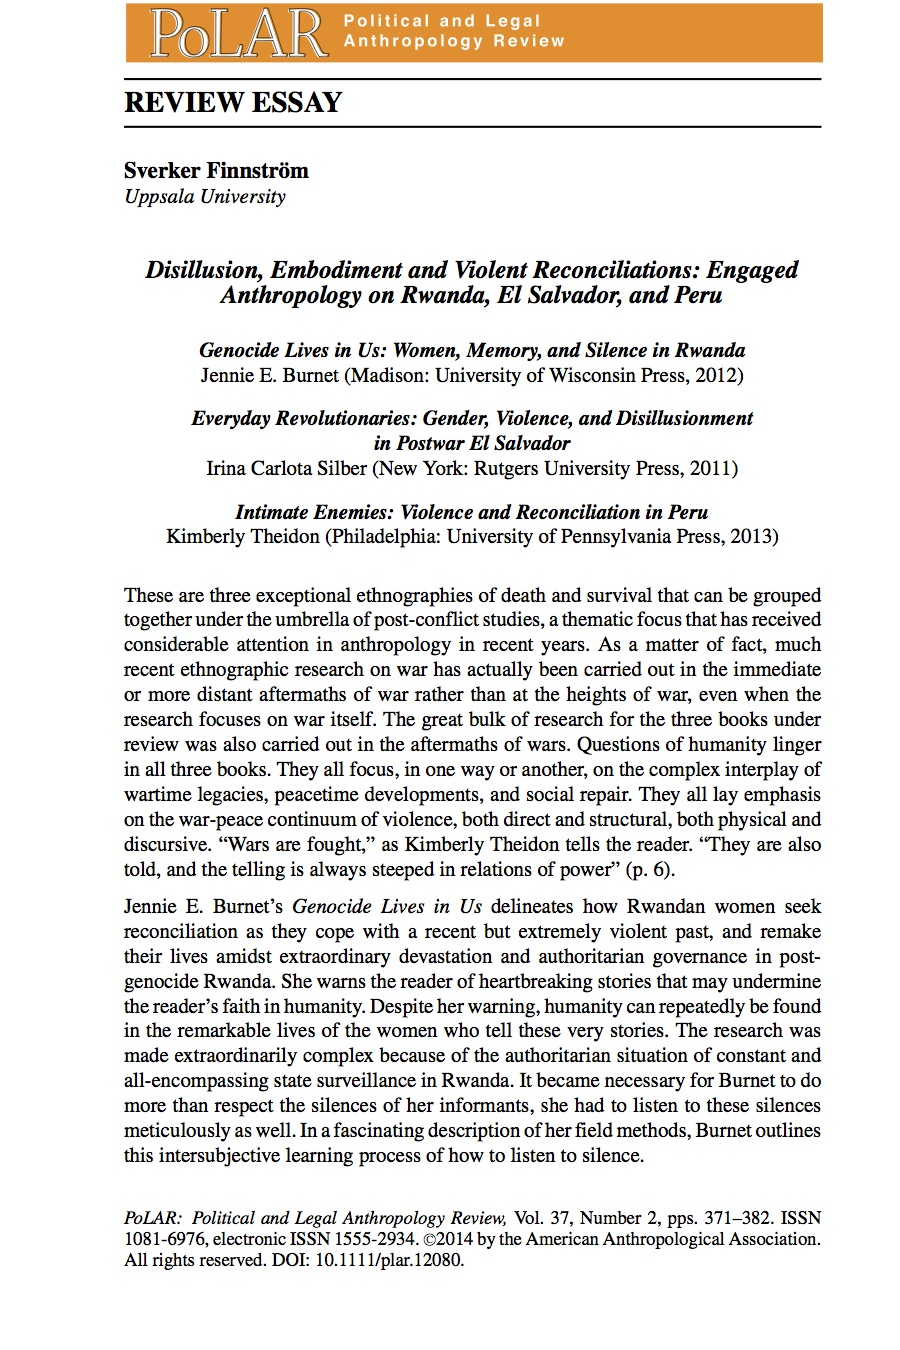 intimate enemies violence and reconciliation in kimberly polar12080